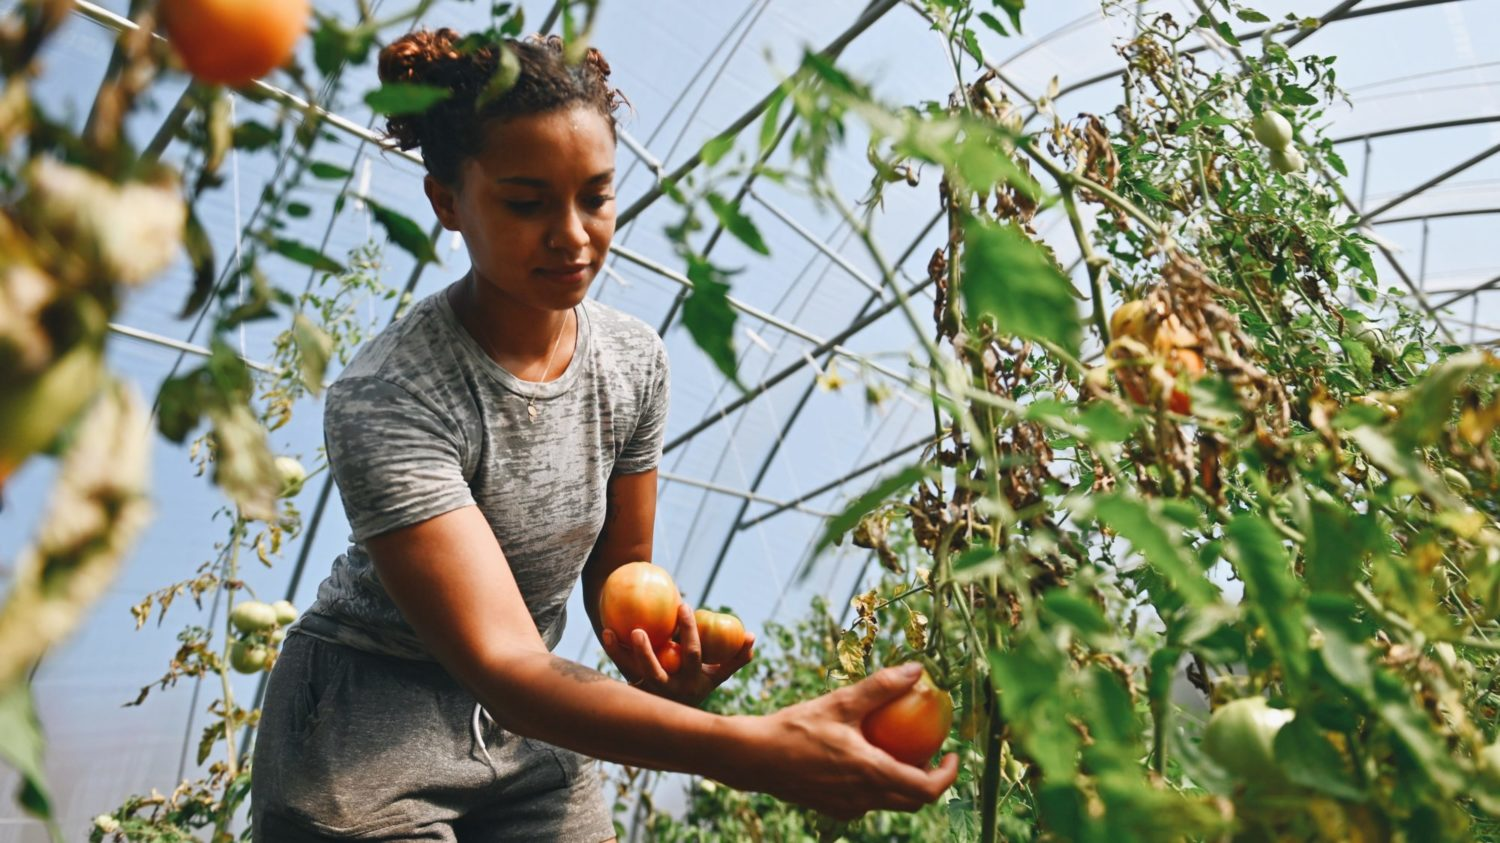 Biden's Support for Black Farmers Could Tackle Both Climate Change and Land Equity